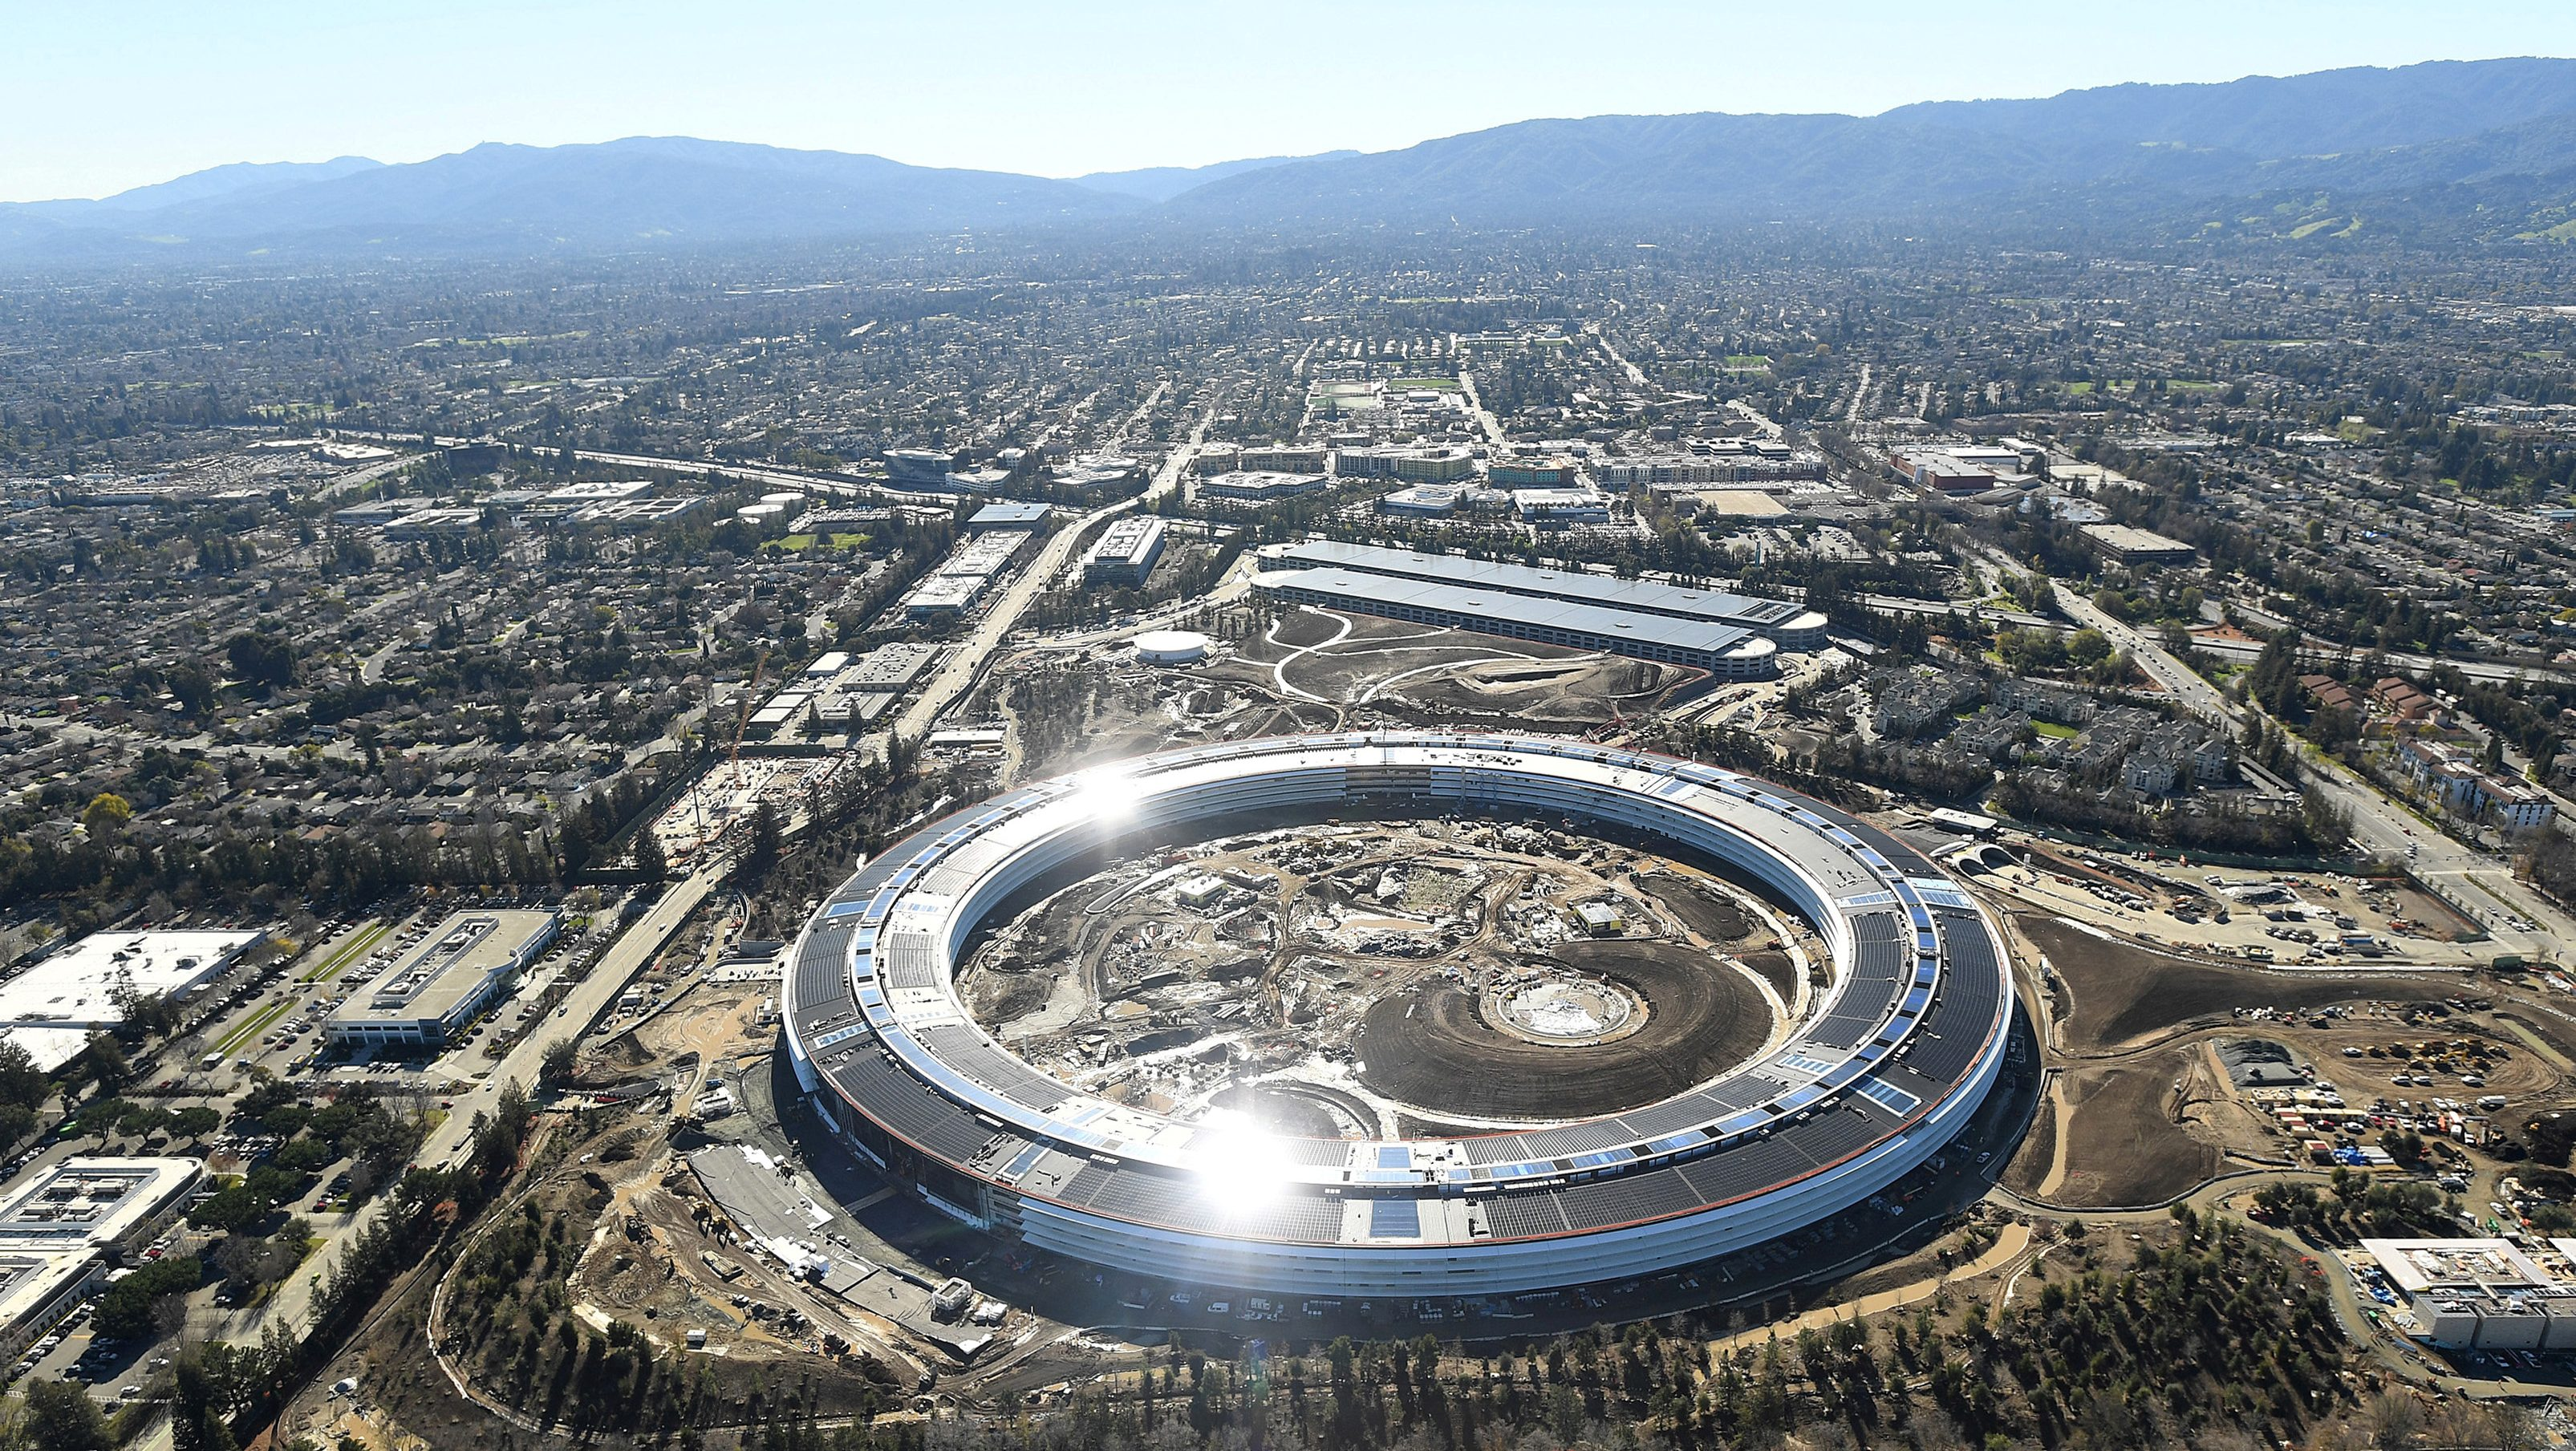 The Apple Campus 2 is seen under construction in Cupertino, California in this aerial photo taken January 13, 2017. REUTERS/Noah Berger - RTX2ZXKG